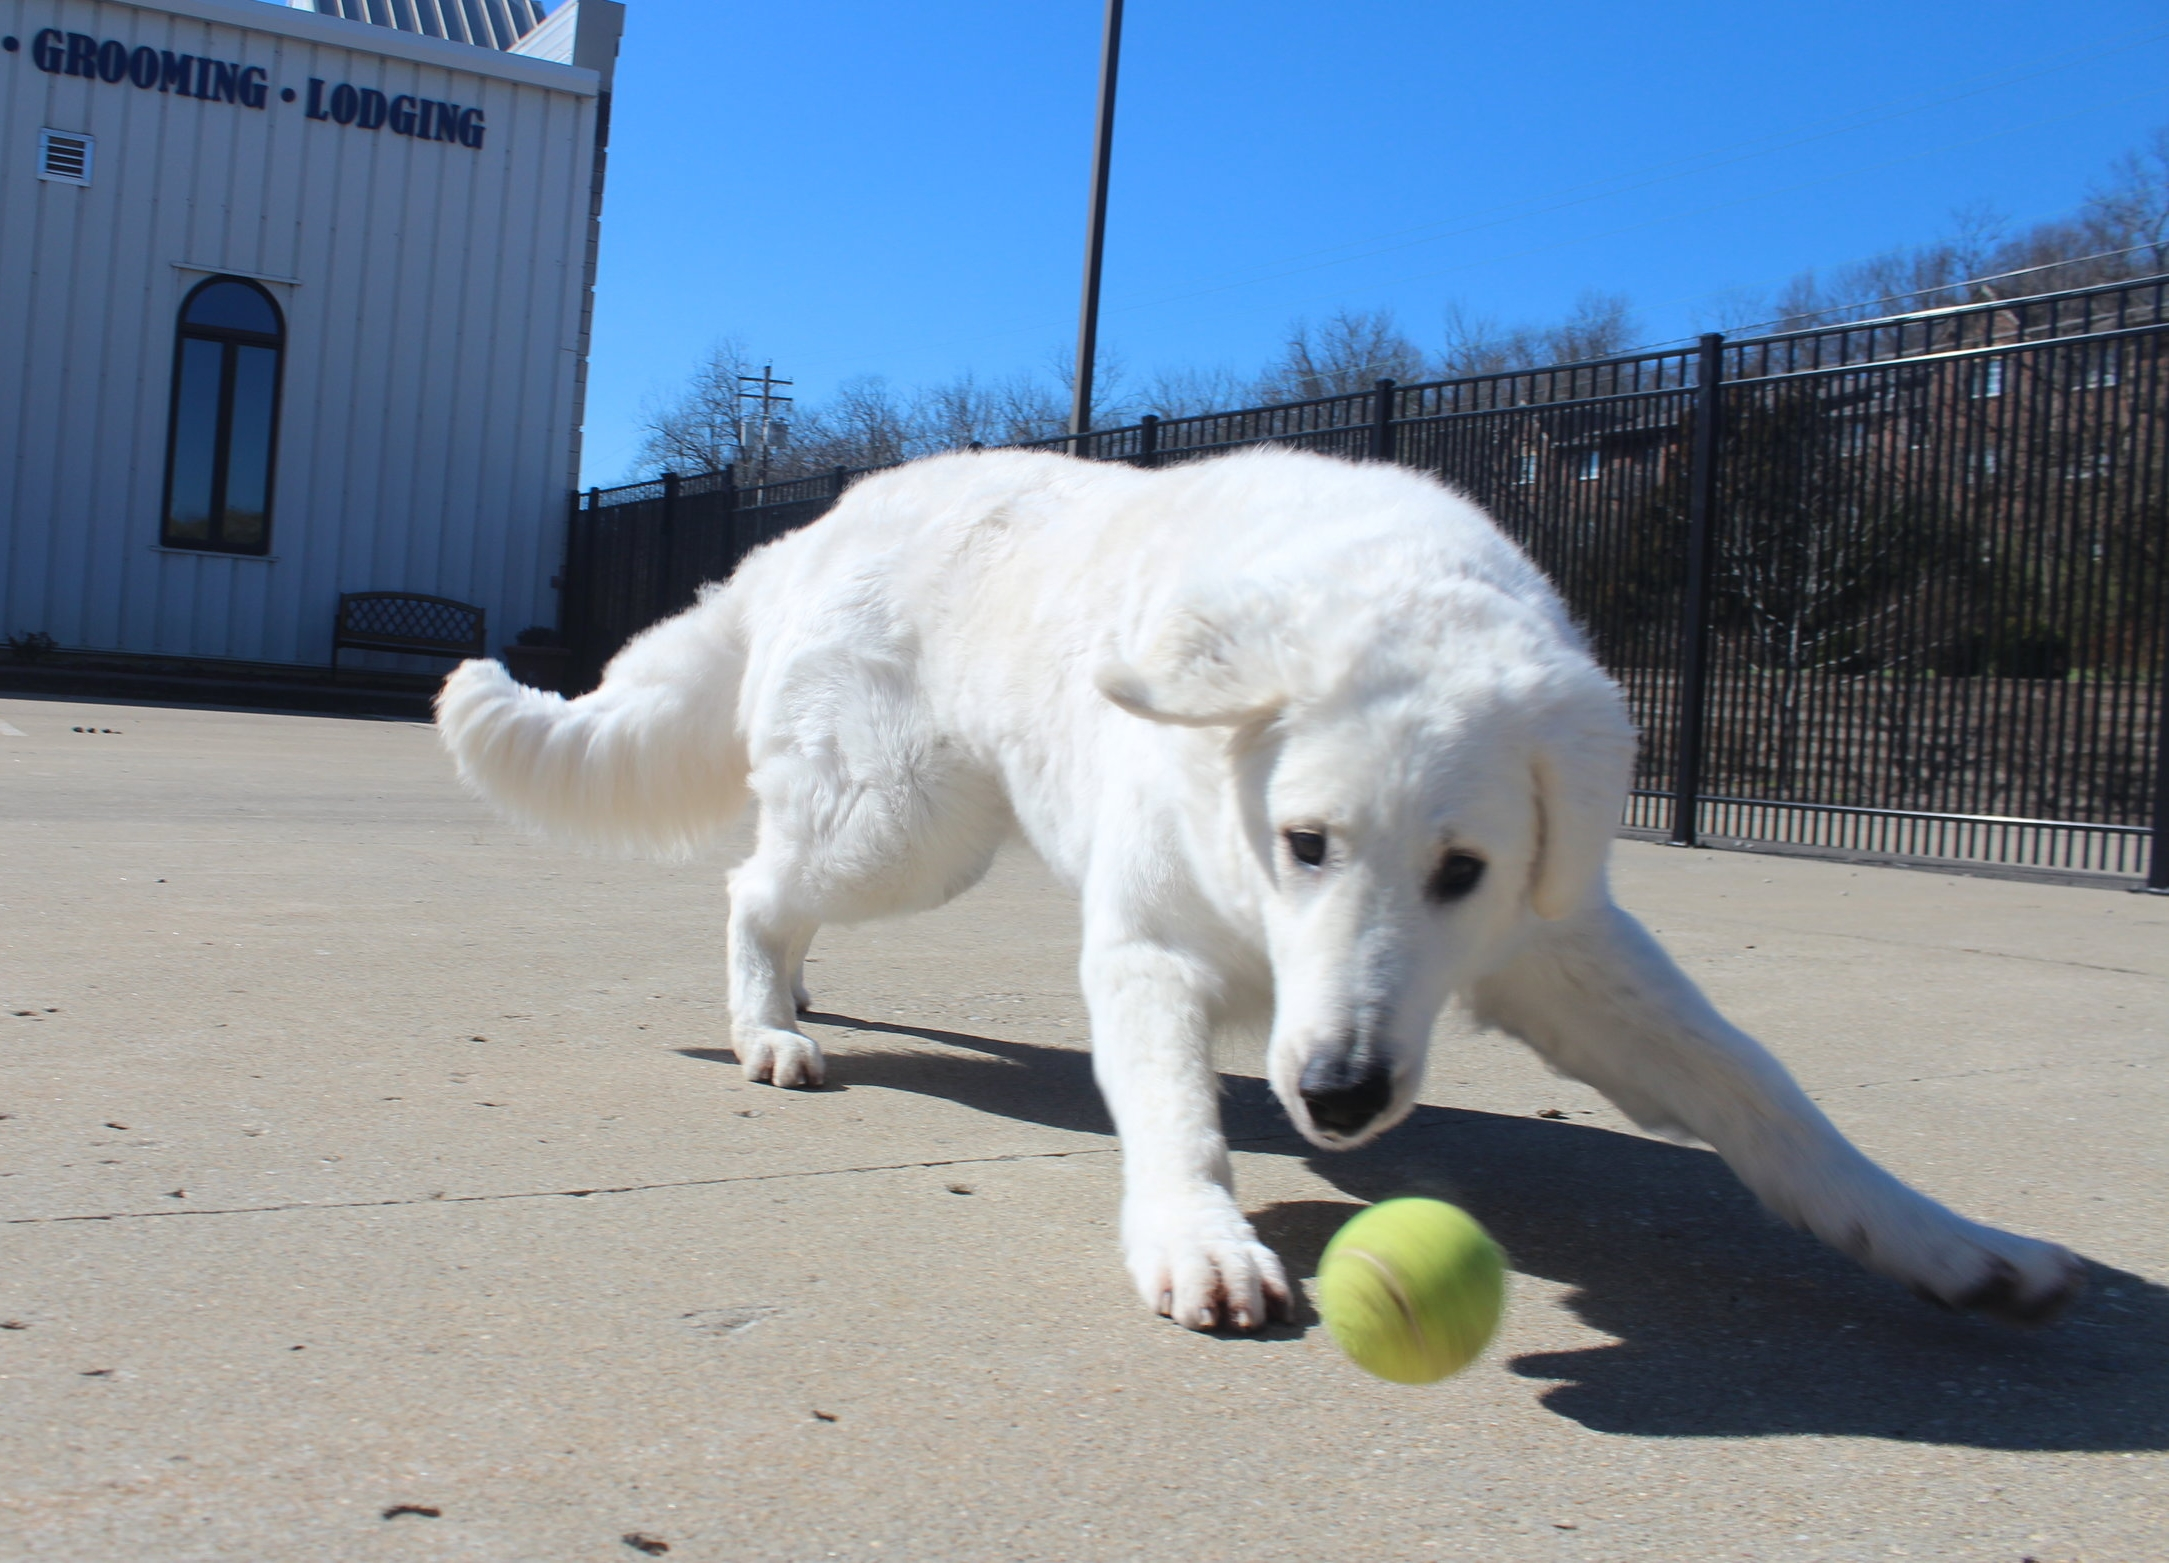 Mo'ne is our most famous dog that's ever come through Pet Nation Lodge. A famous show dog, she's competed in many dog shows including the world famous Westminster Dog Show. She's also great at catching tennis balls too!